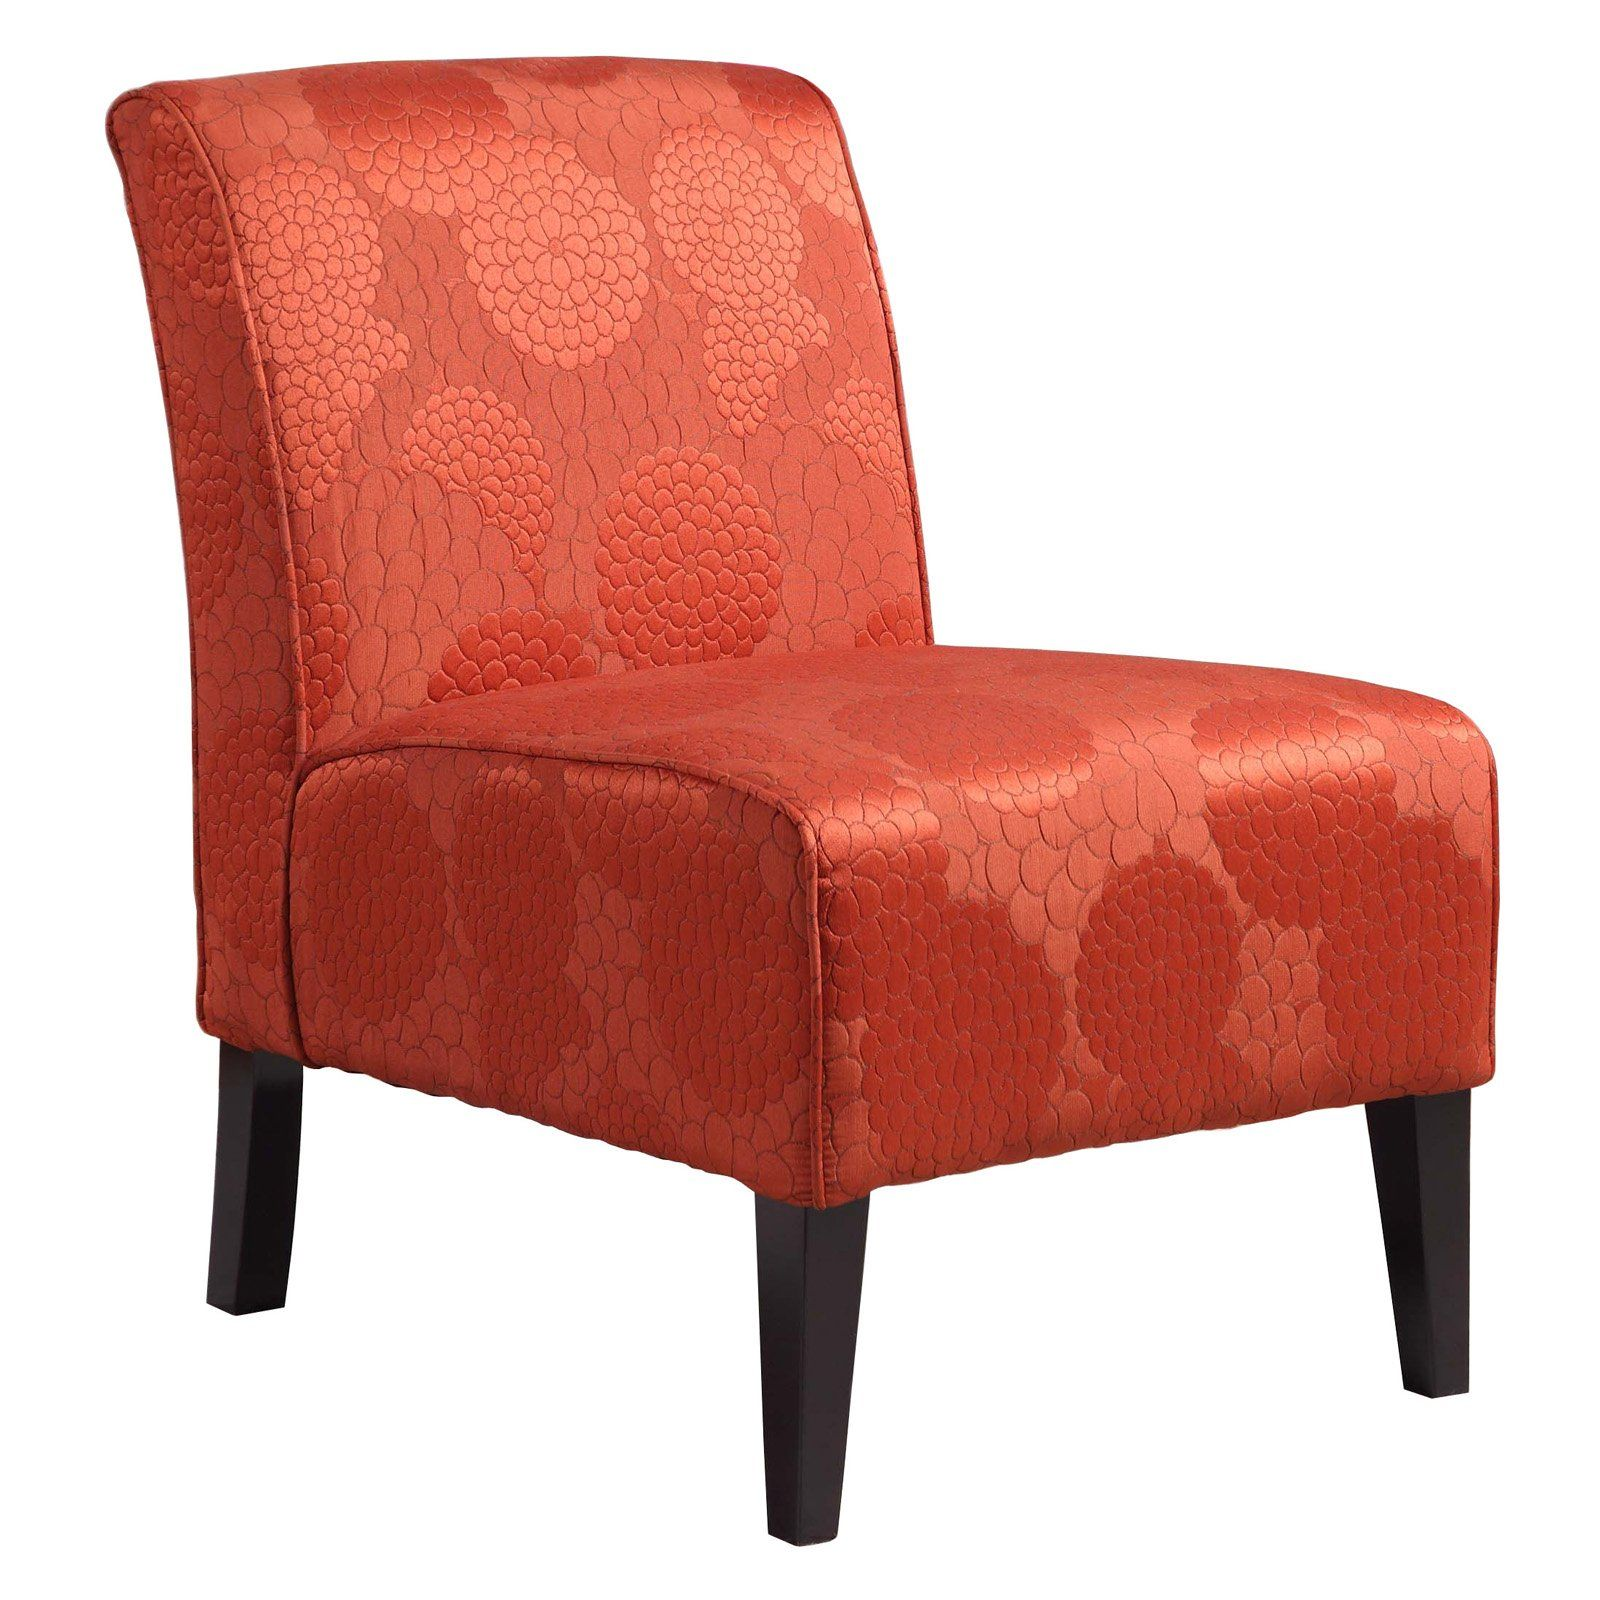 Lily Slipper Chair Matelesse Burnt Orange Chair Furniture